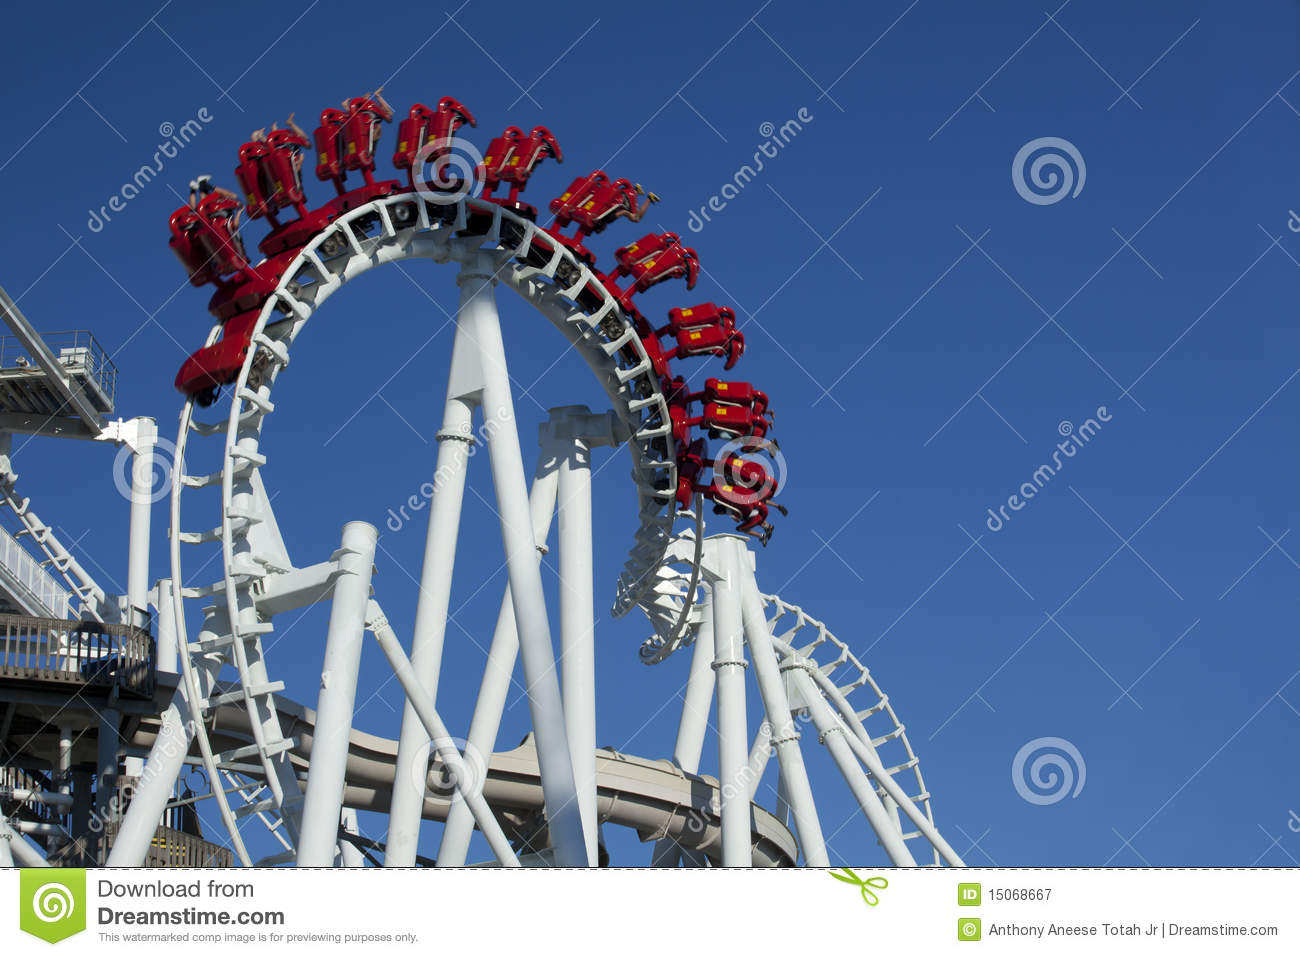 Inverted Hanging Rollercoaster